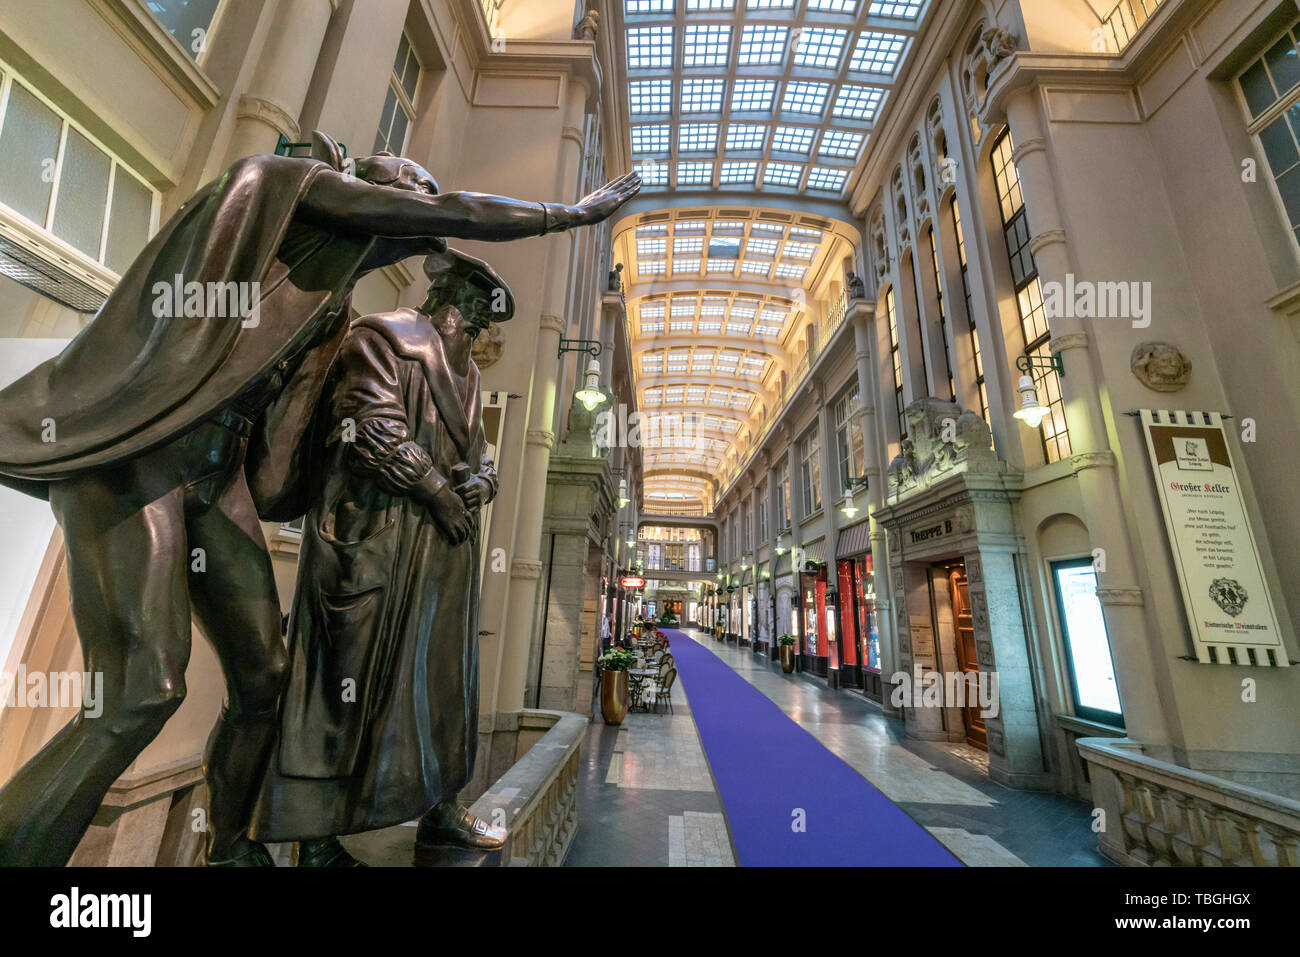 Madler Passage, Mephistopheles and Faust sculptures, Leipzig, Saxony, Germany, Europe - Stock Image